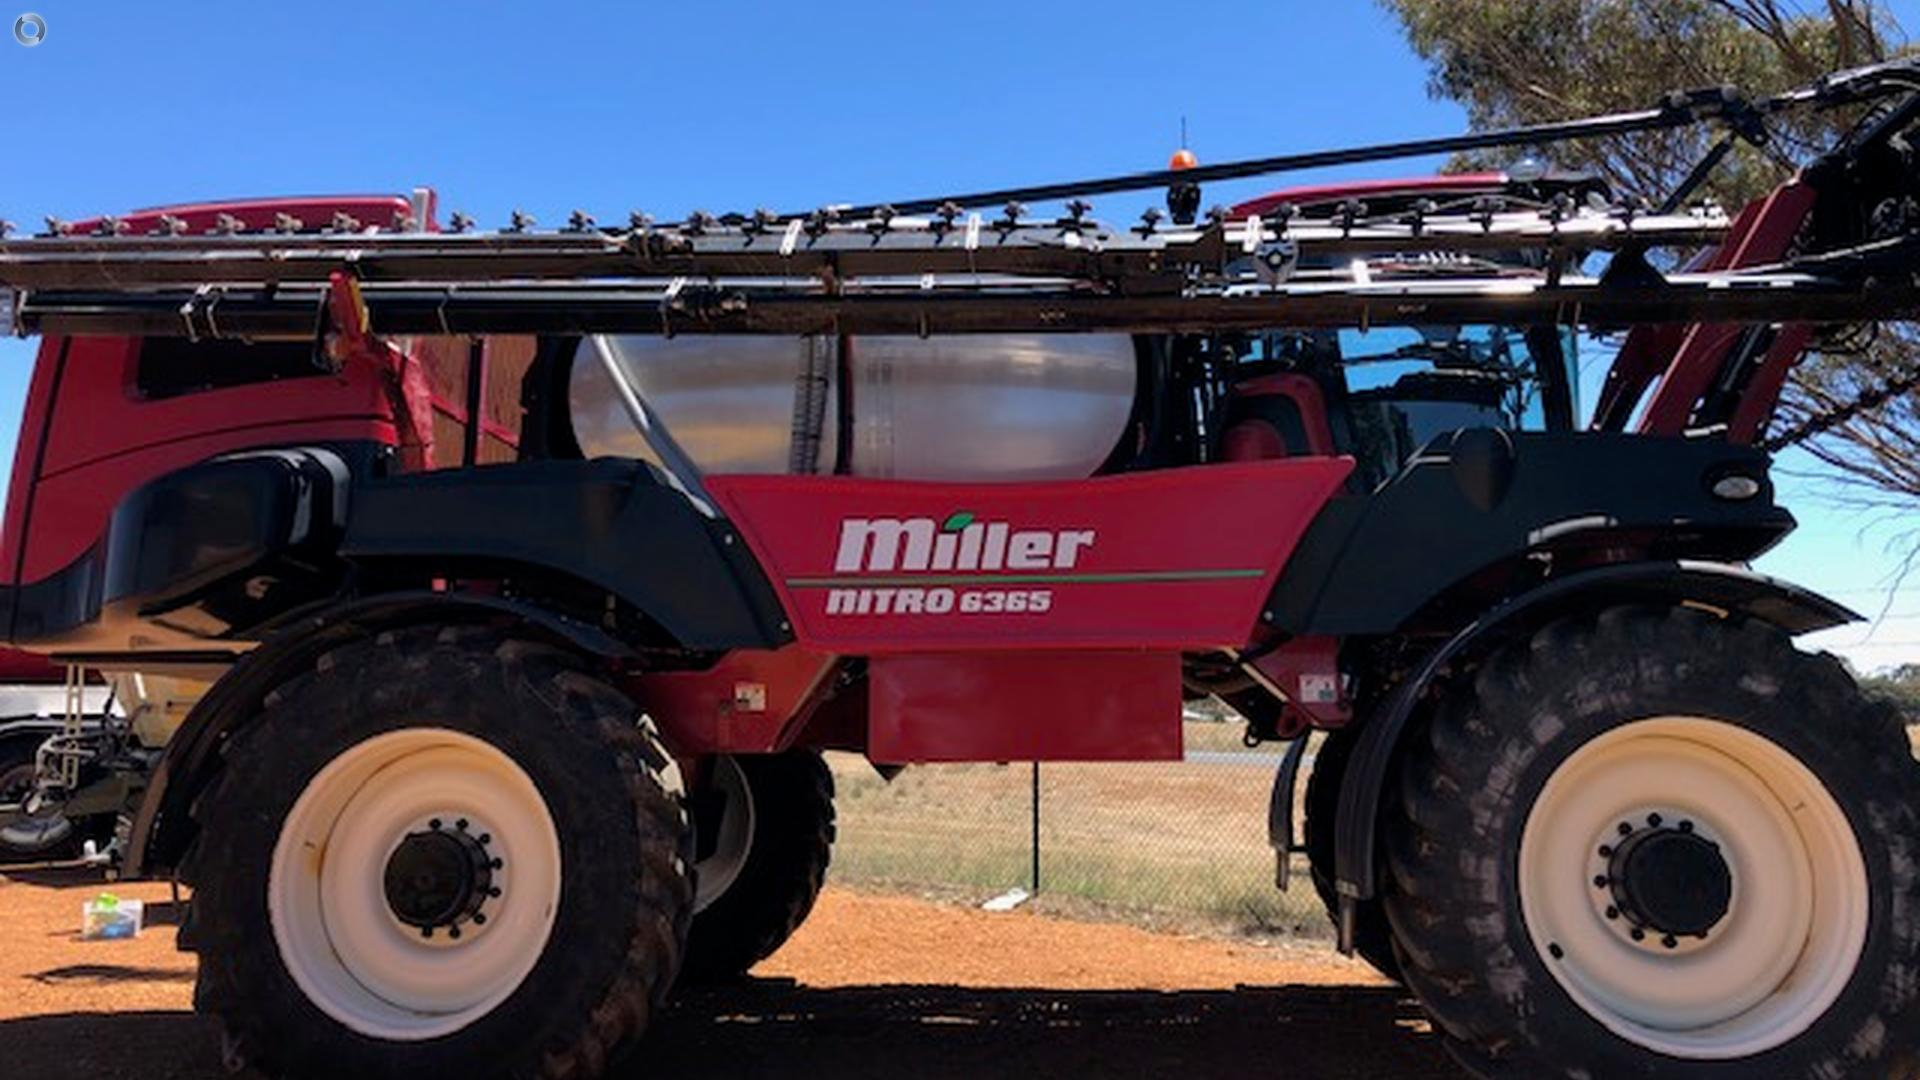 2015 Miller Nitro 6365 Sprayer